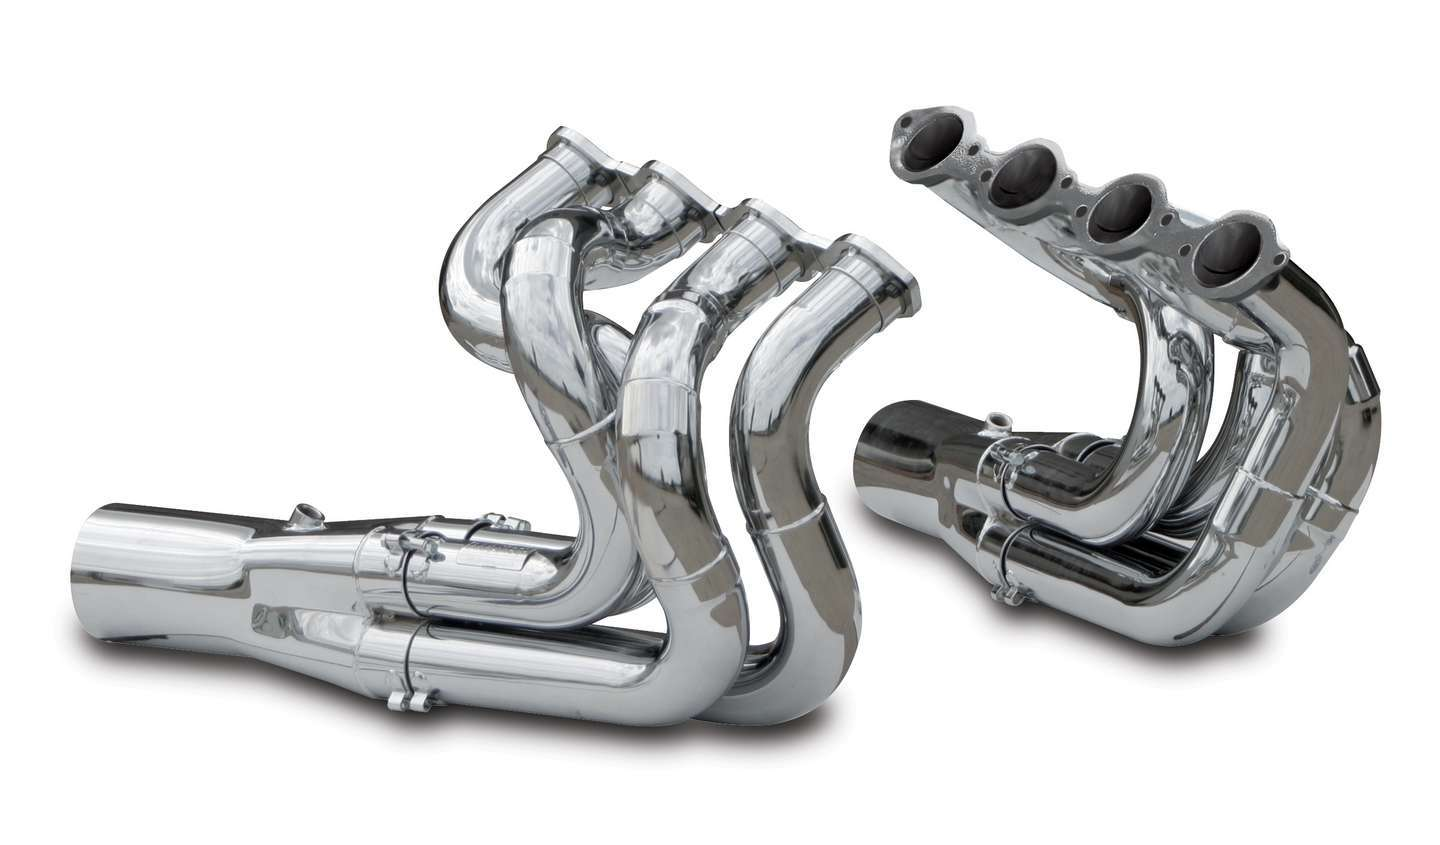 Dynatech 750-96410 Headers, Drag, 2-1/4 to 2-3/8 in Primary, 4-1/2 in Collector, Steel, Chrome, Big Block Chevy, Dragster, Kit